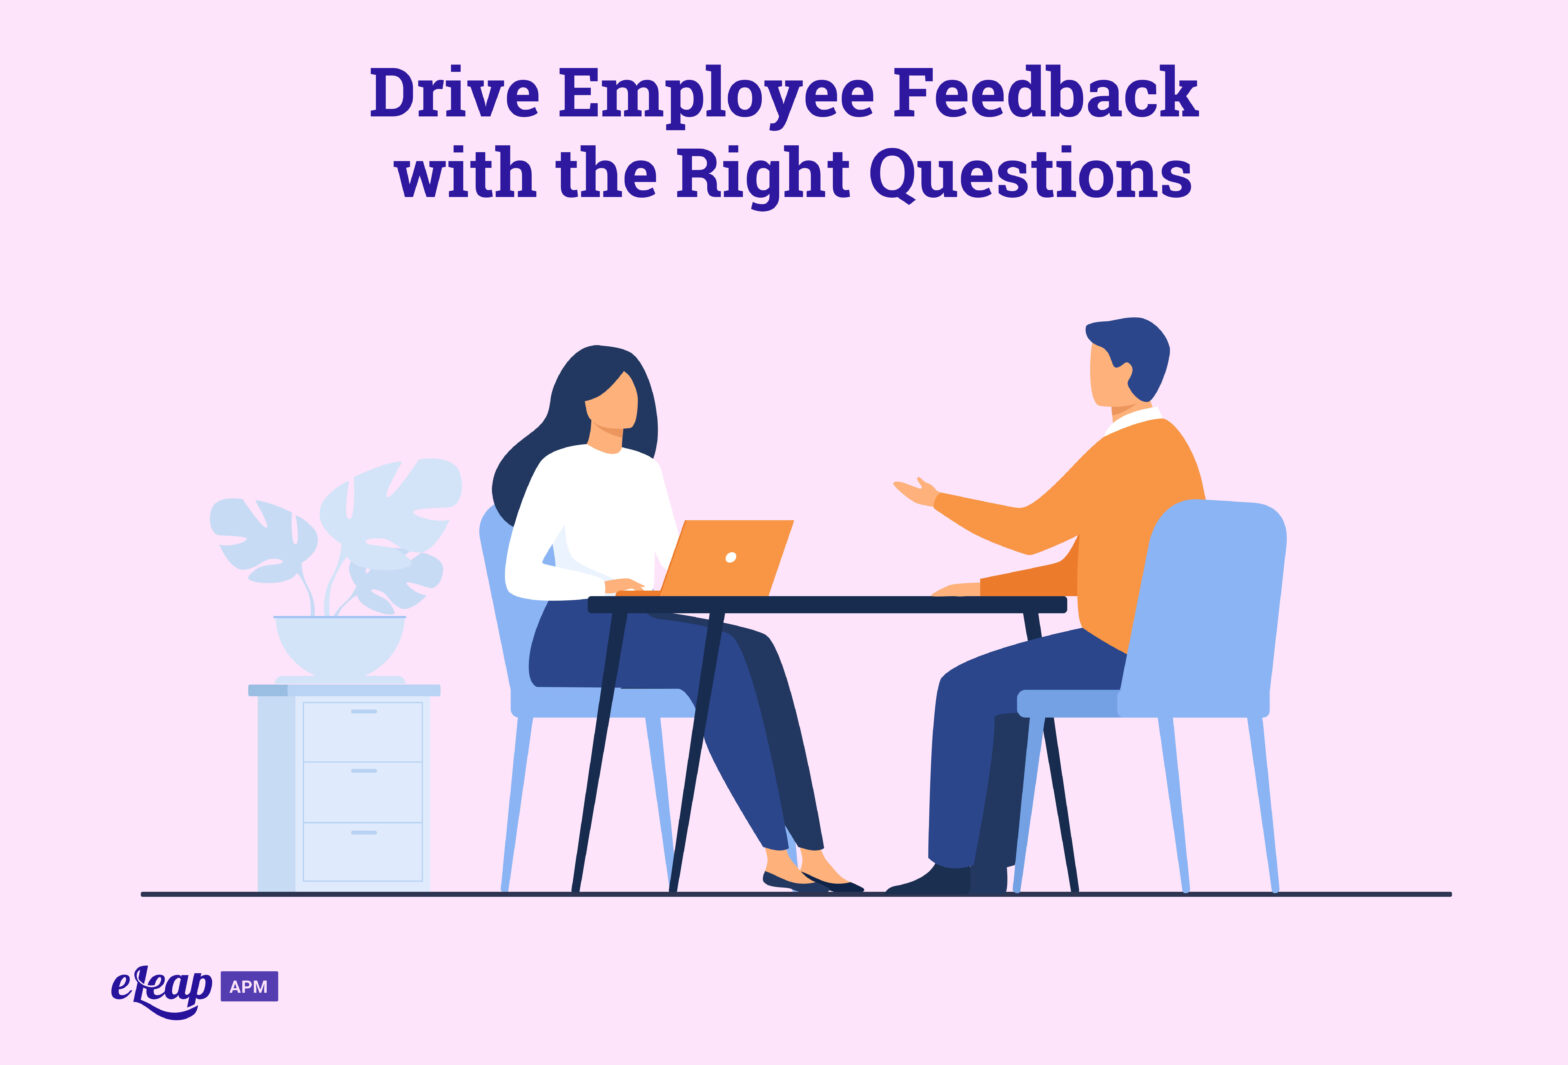 Drive Employee Feedback with the Right Questions